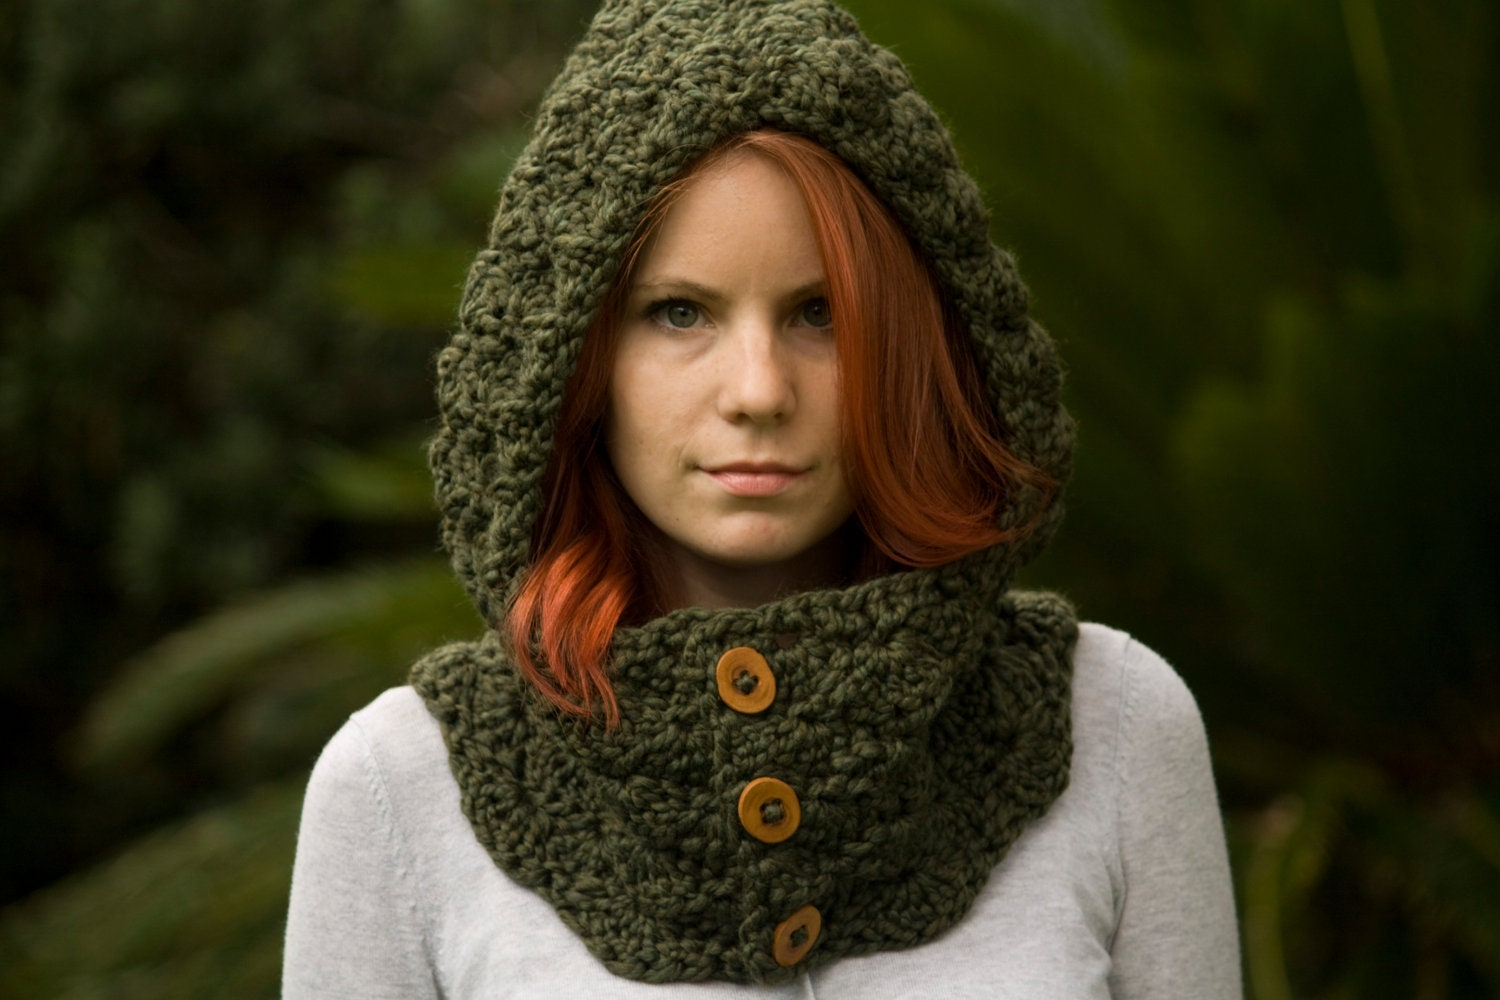 Crochet Unicorn Hooded Scarf Pattern : Hooded Cowl Wood Button Crochet hooded scarf Olive by WellRavelled